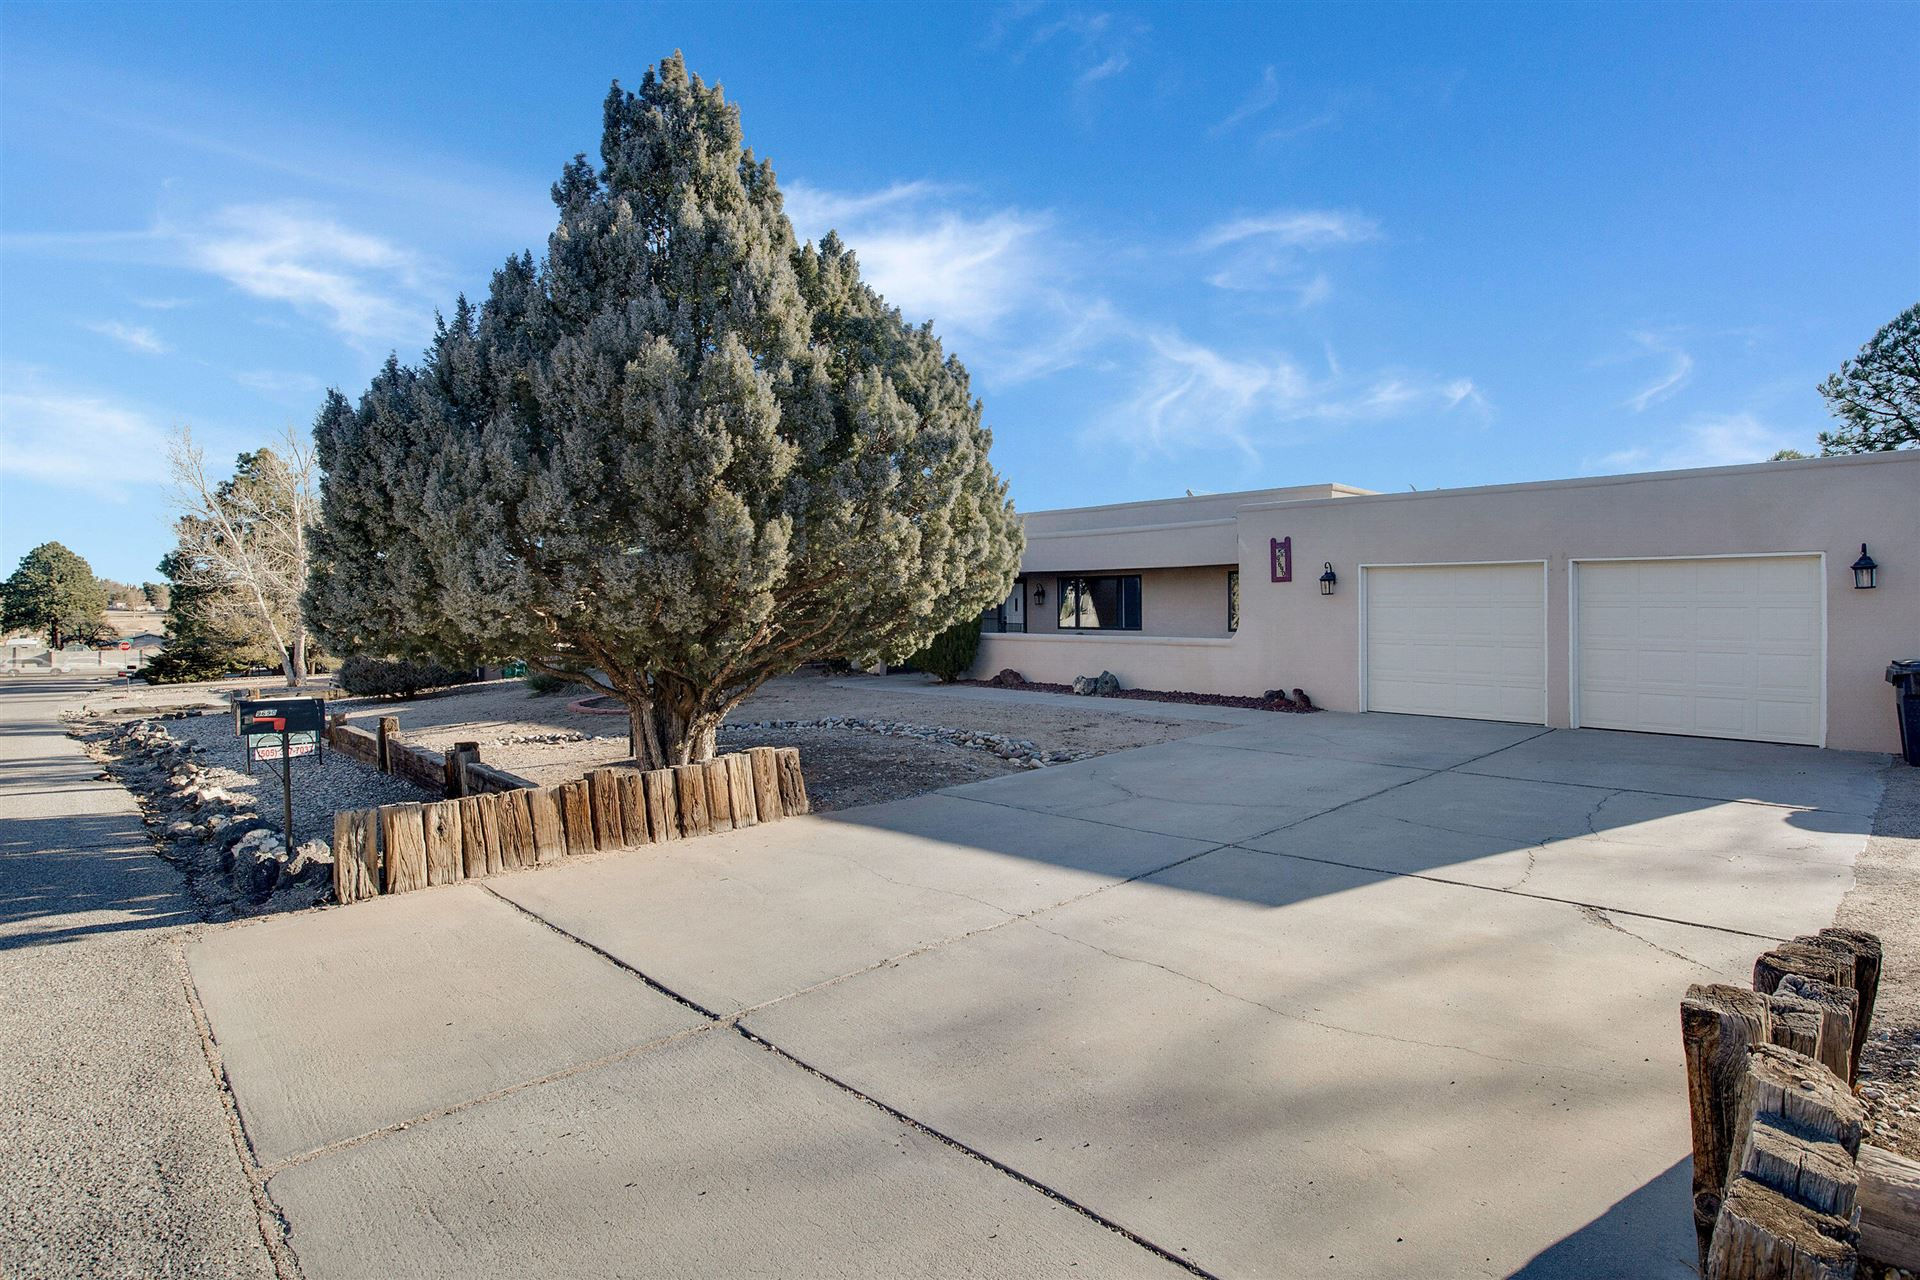 9690 ASBURY Lane NW, Albuquerque, NM 87114 - MLS#: 986765